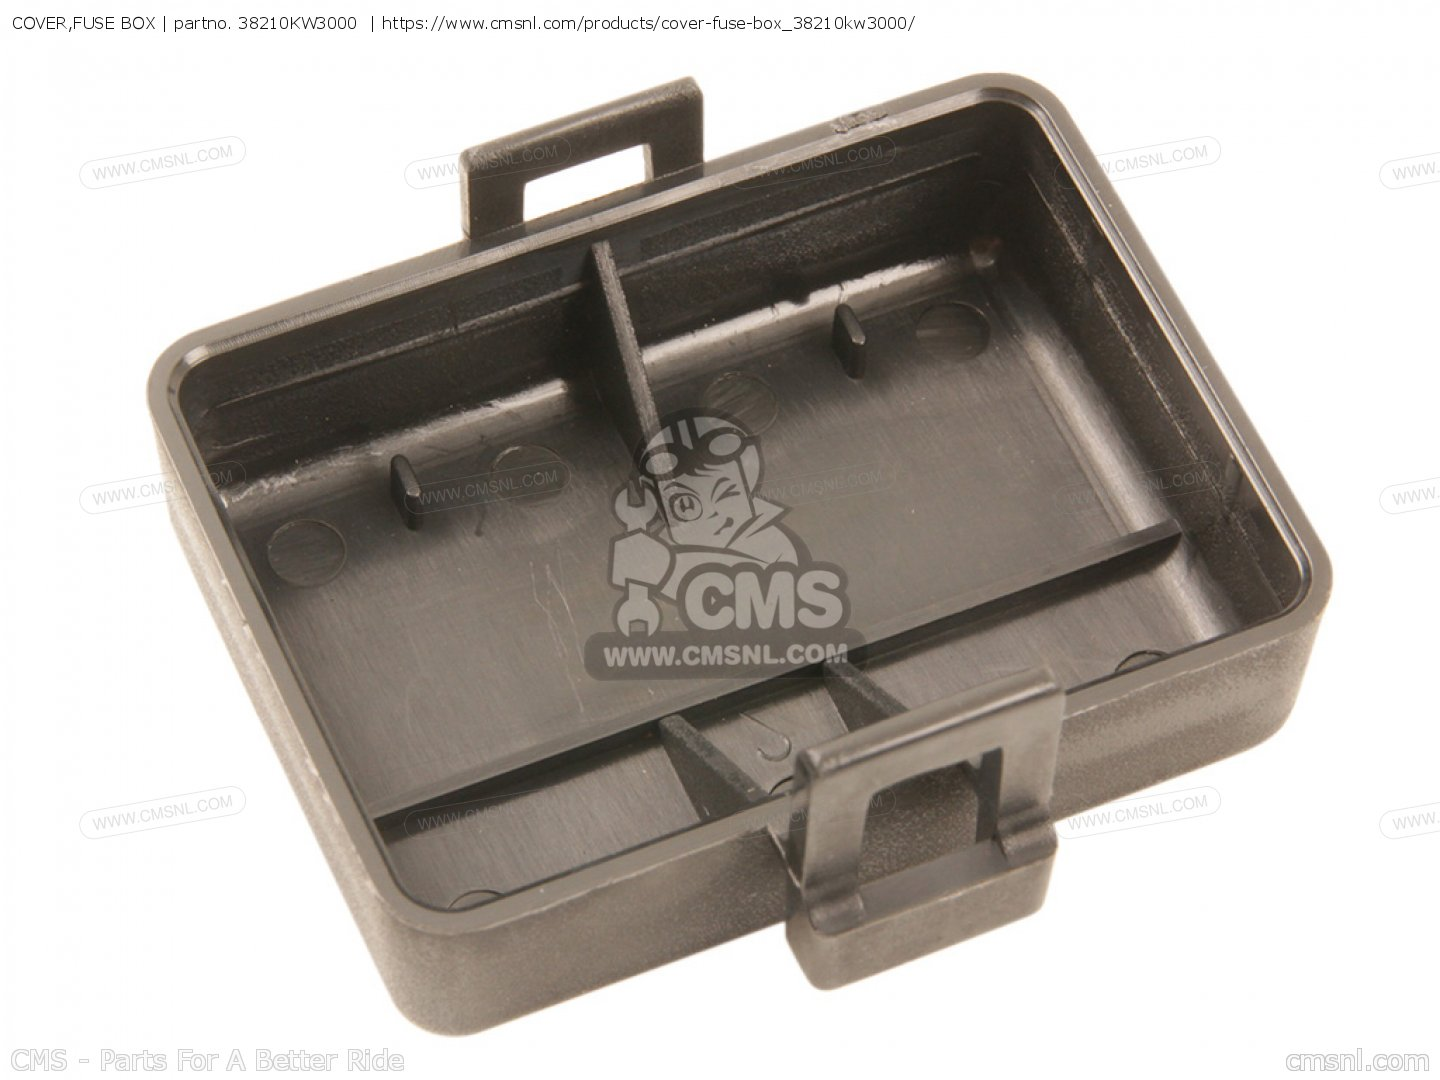 COVER,FUSE BOX, fits NX250 AX-1 1989 (K) JAPAN MD21-110.115 - order ...